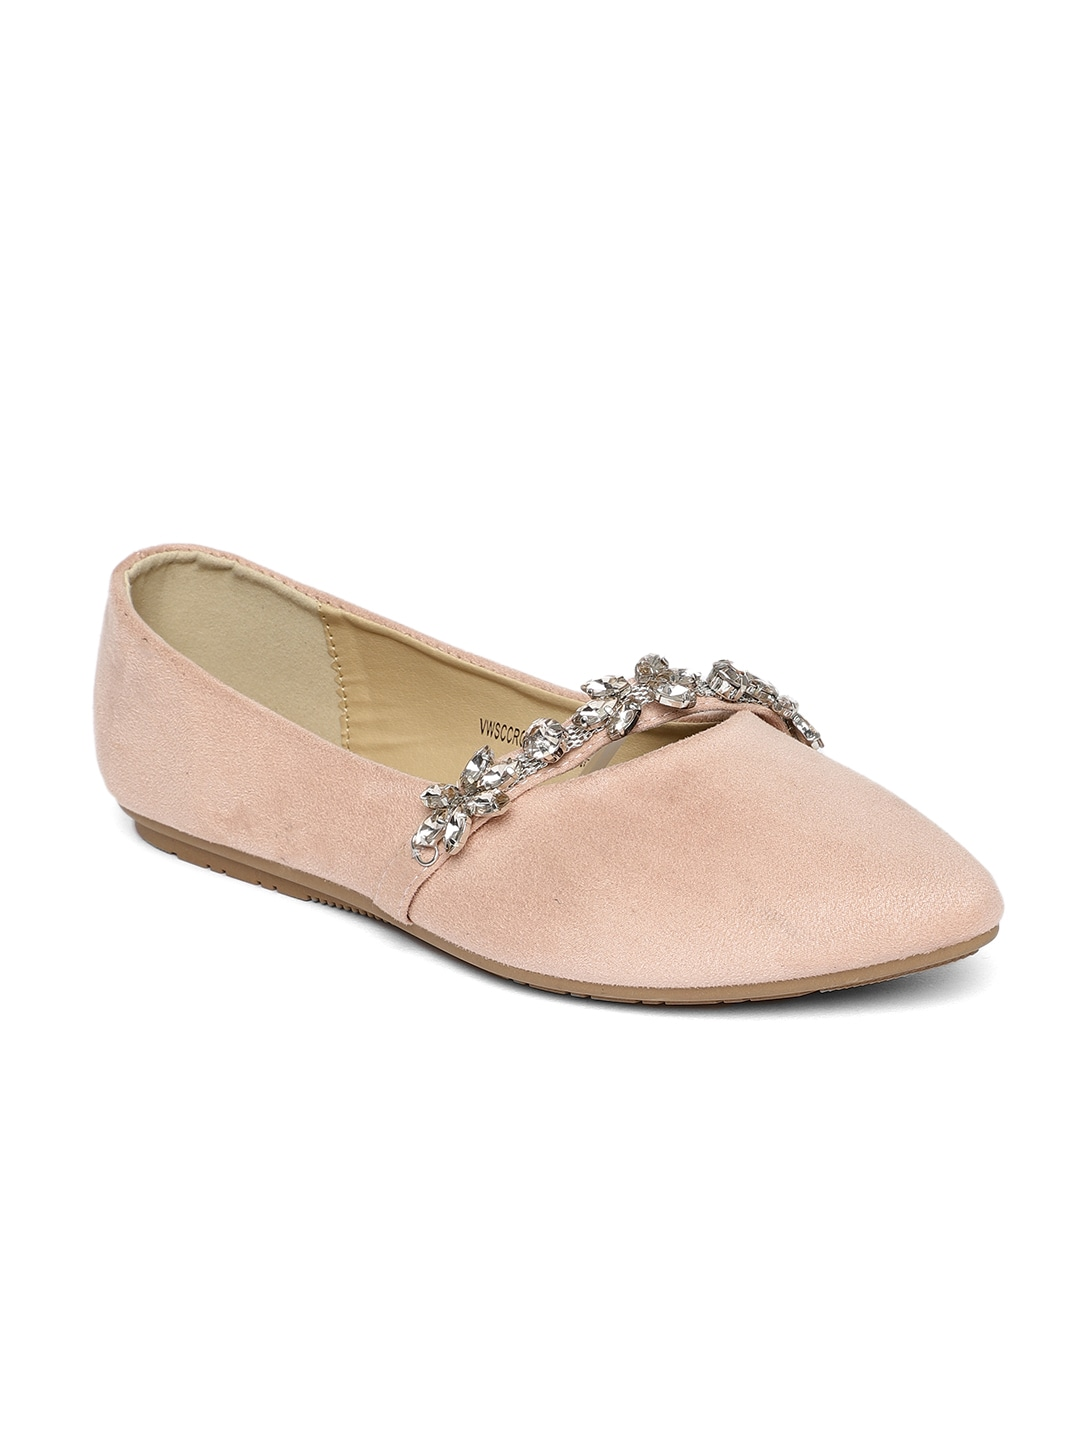 2dfbb70a8d Casual Shoes For Women - Buy Women s Casual Shoes Online from Myntra